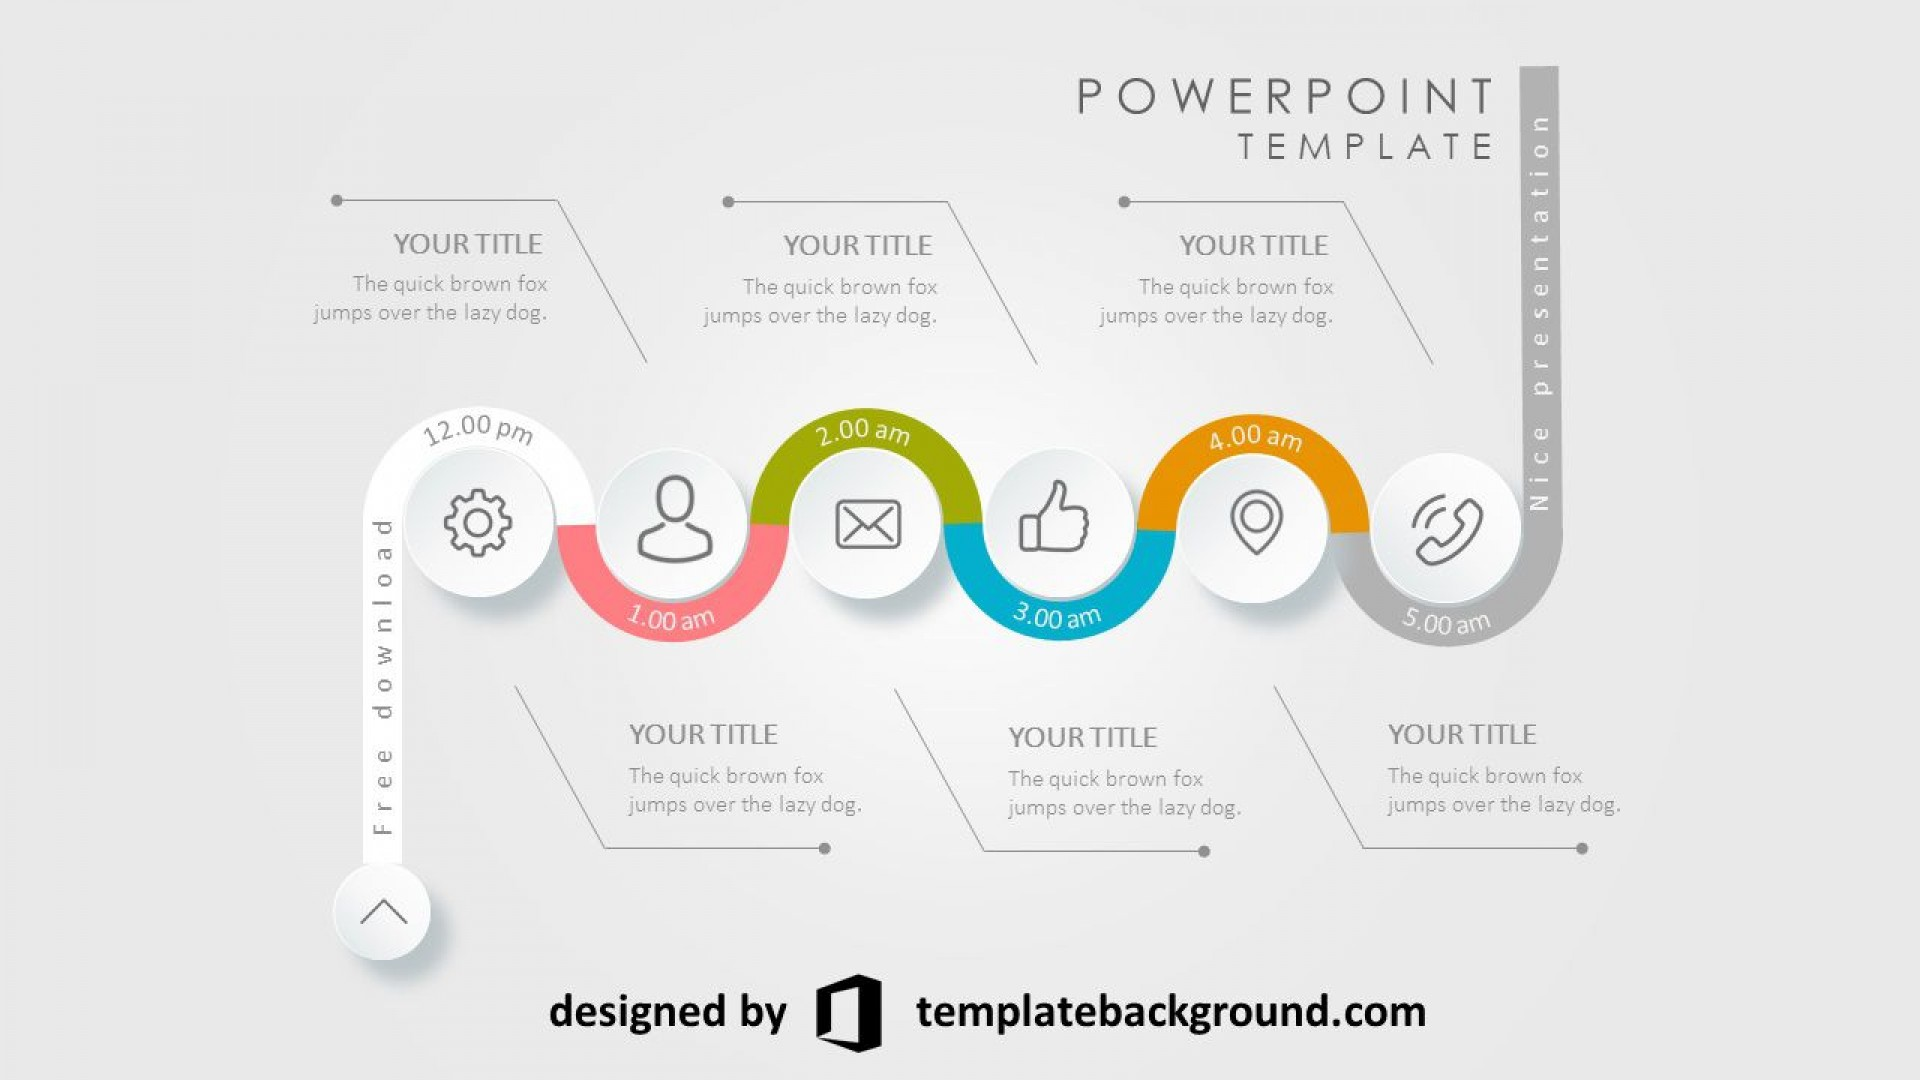 003 Best Free Downloadable Ppt Template Picture  Templates For College Project Presentation Download Animated Medical1920